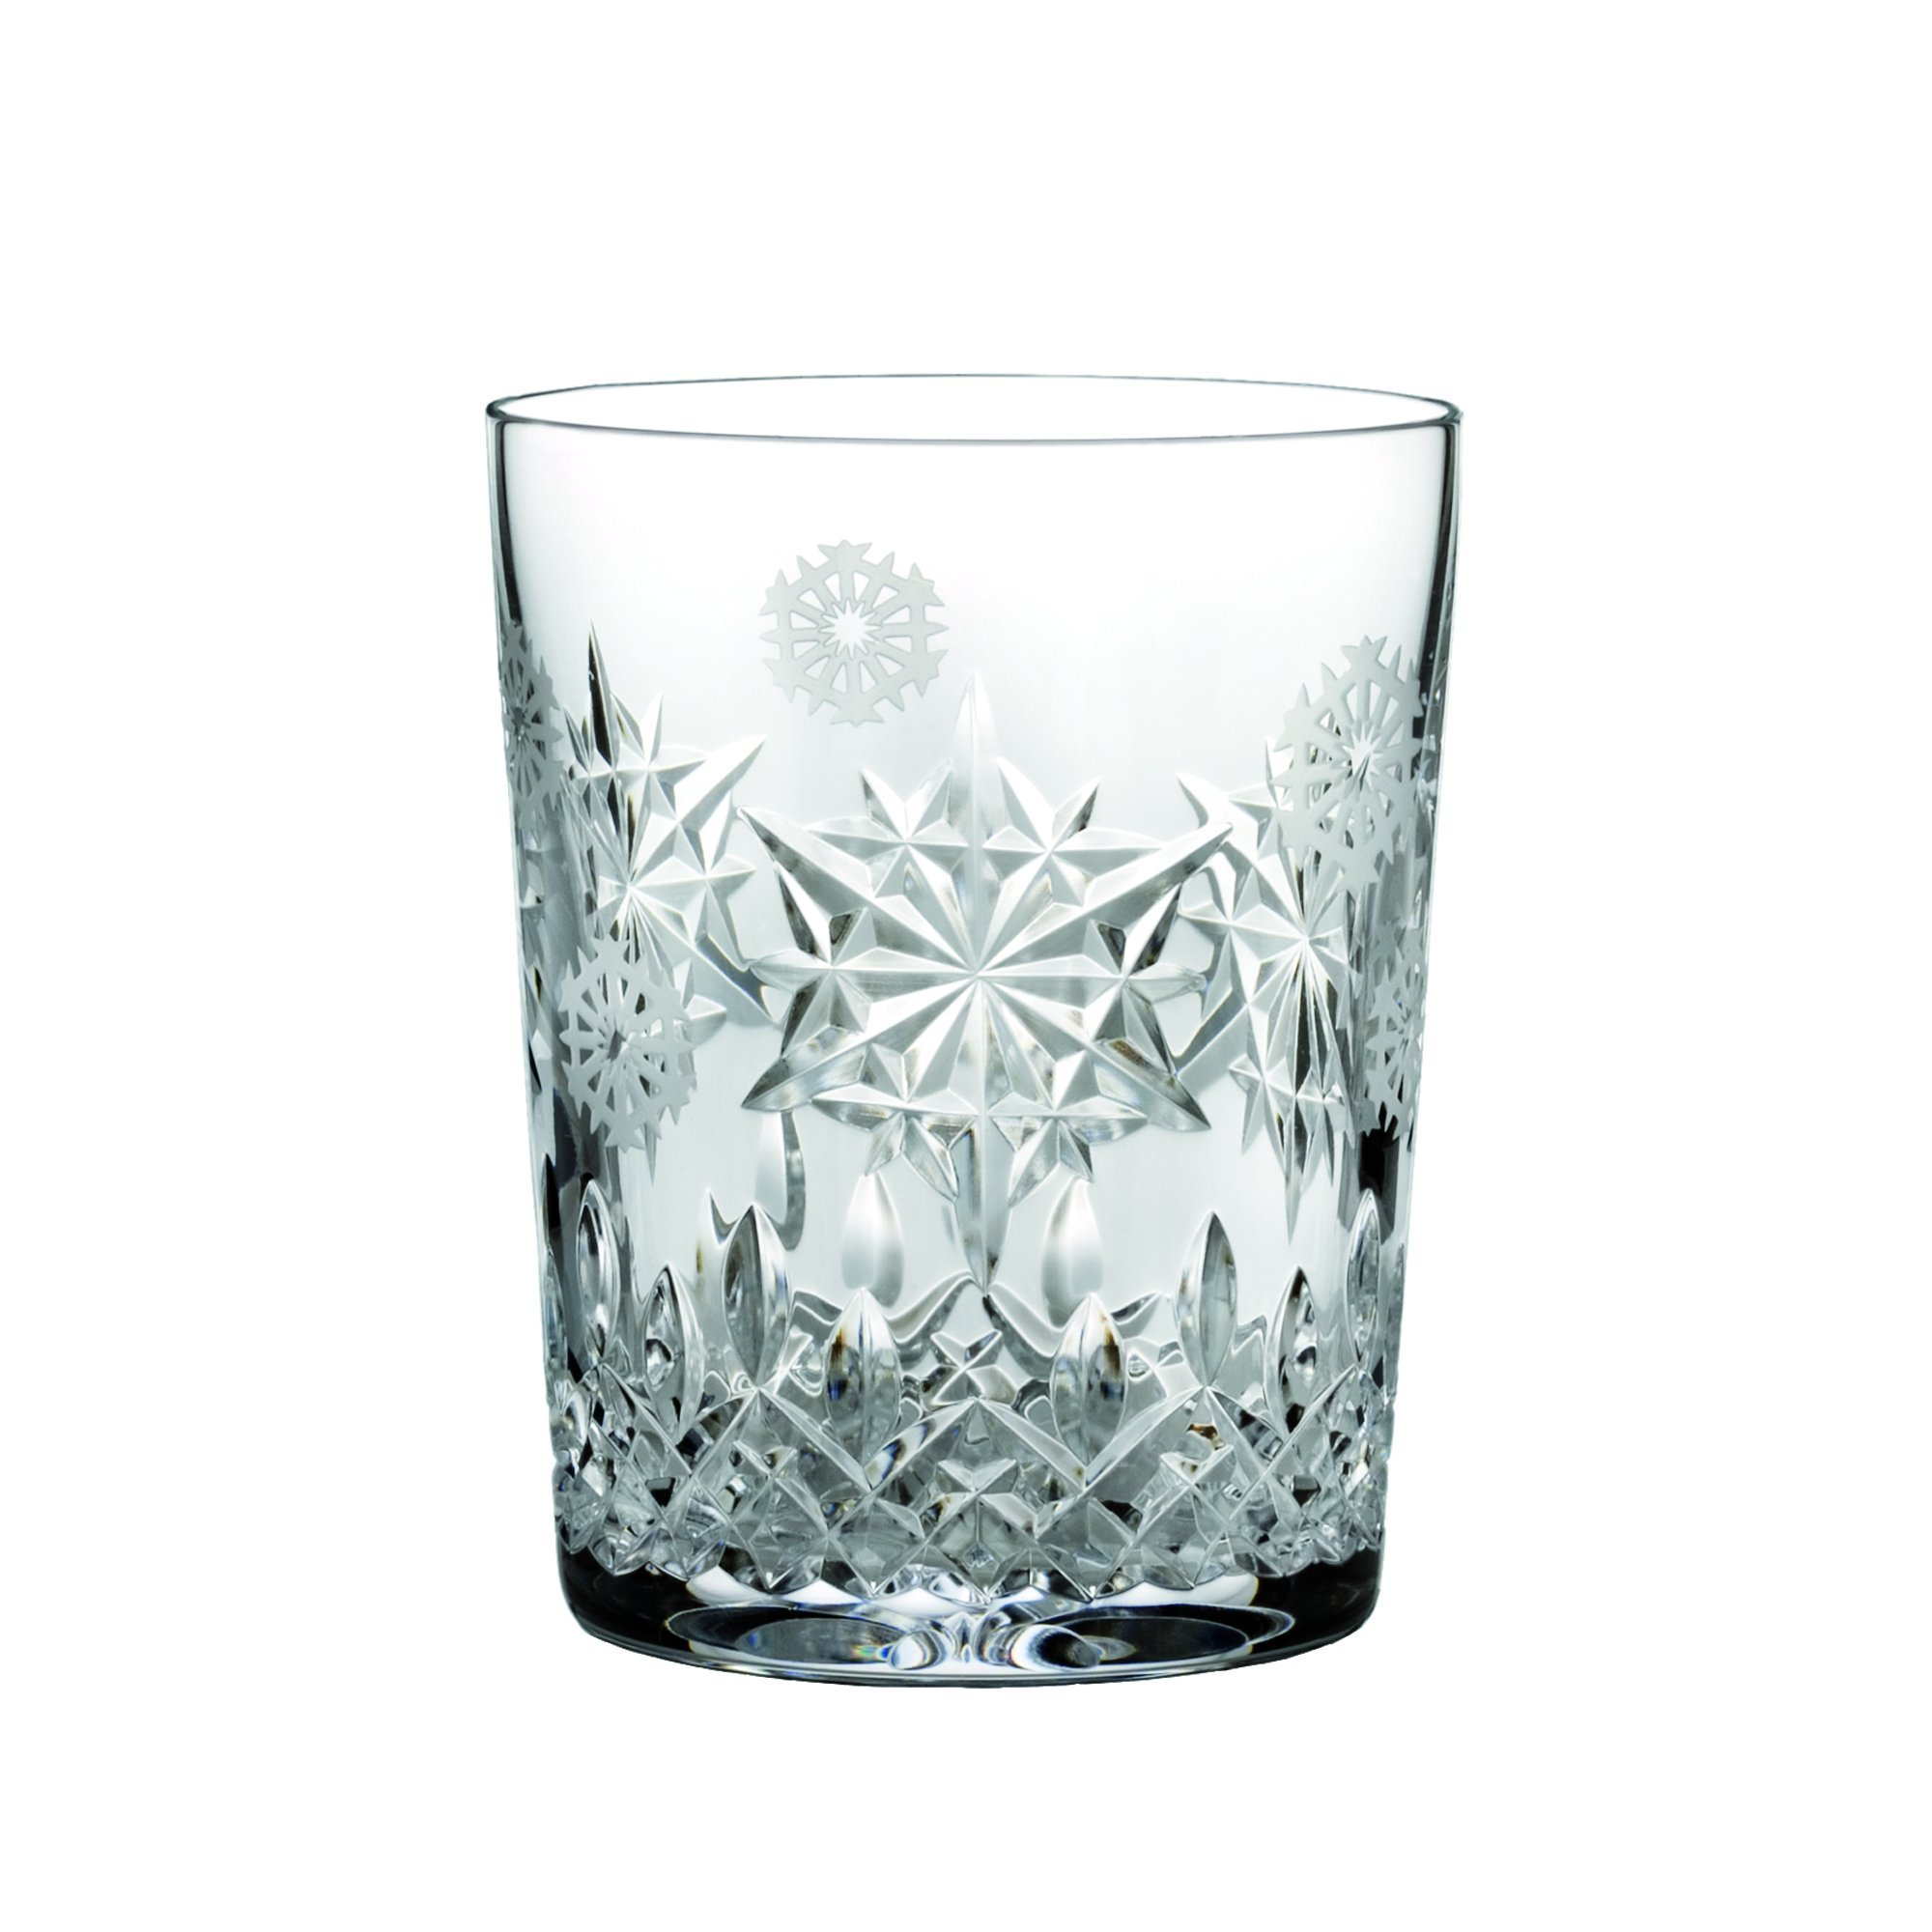 Waterford Wishes for Joy Double Old Fashioned, Premiere Edition